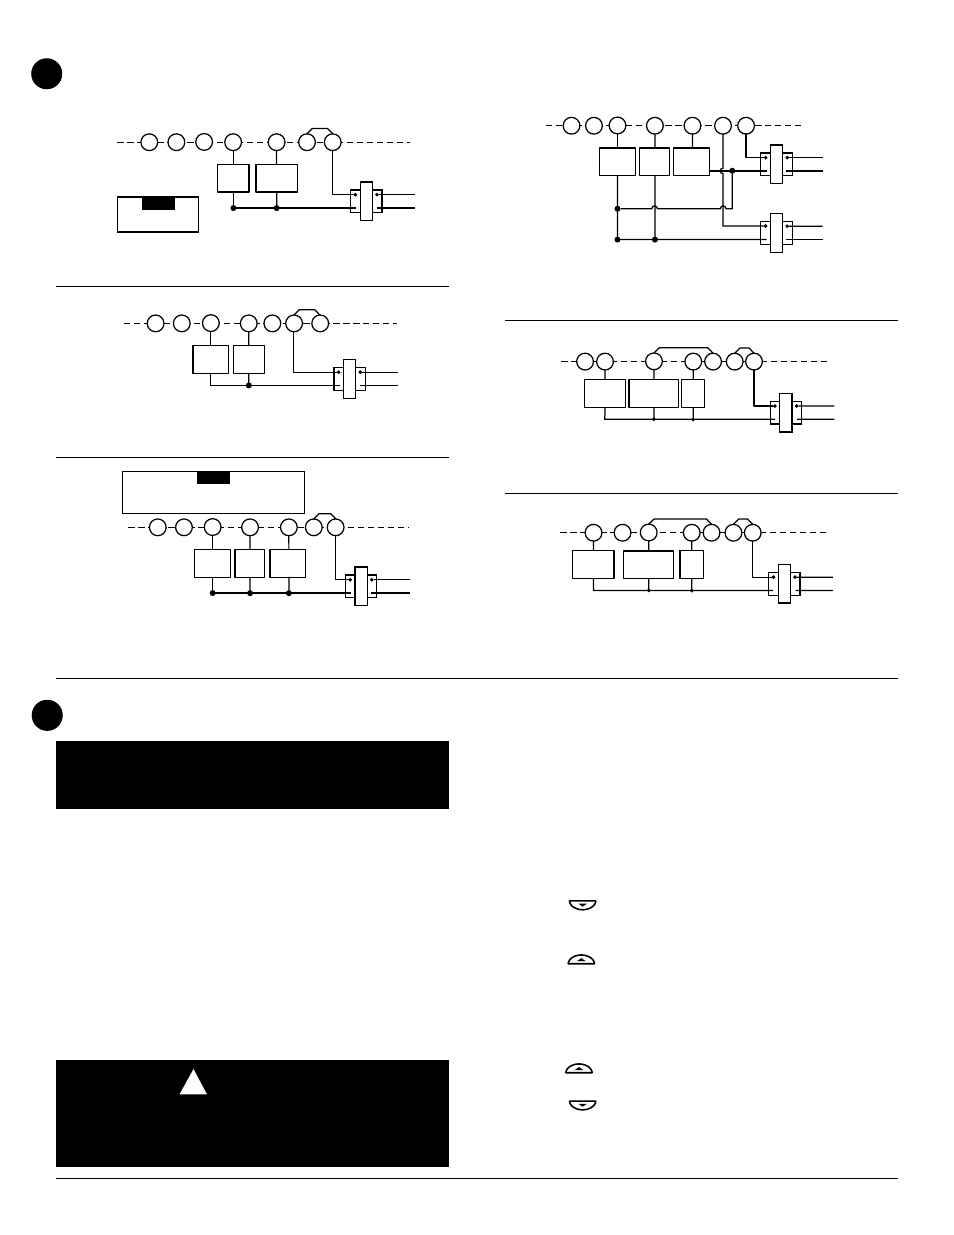 Honeywell Hz Wiring Diagram on honeywell thermostat blue wire, honeywell relay wiring, honeywell wiring guide, honeywell personal fans, honeywell v8043e wiring, honeywell gas fireplace, honeywell heater system, honeywell zone valve wiring, honeywell thermostat 5 wire, honeywell wiring wizard, honeywell installation manual, honeywell thermostat diagram, honeywell transformer wiring, honeywell wiring your home, honeywell schematic diagram, honeywell gas valves, honeywell parts, honeywell power head, honeywell aquastat diagram, honeywell thermostat wiring,